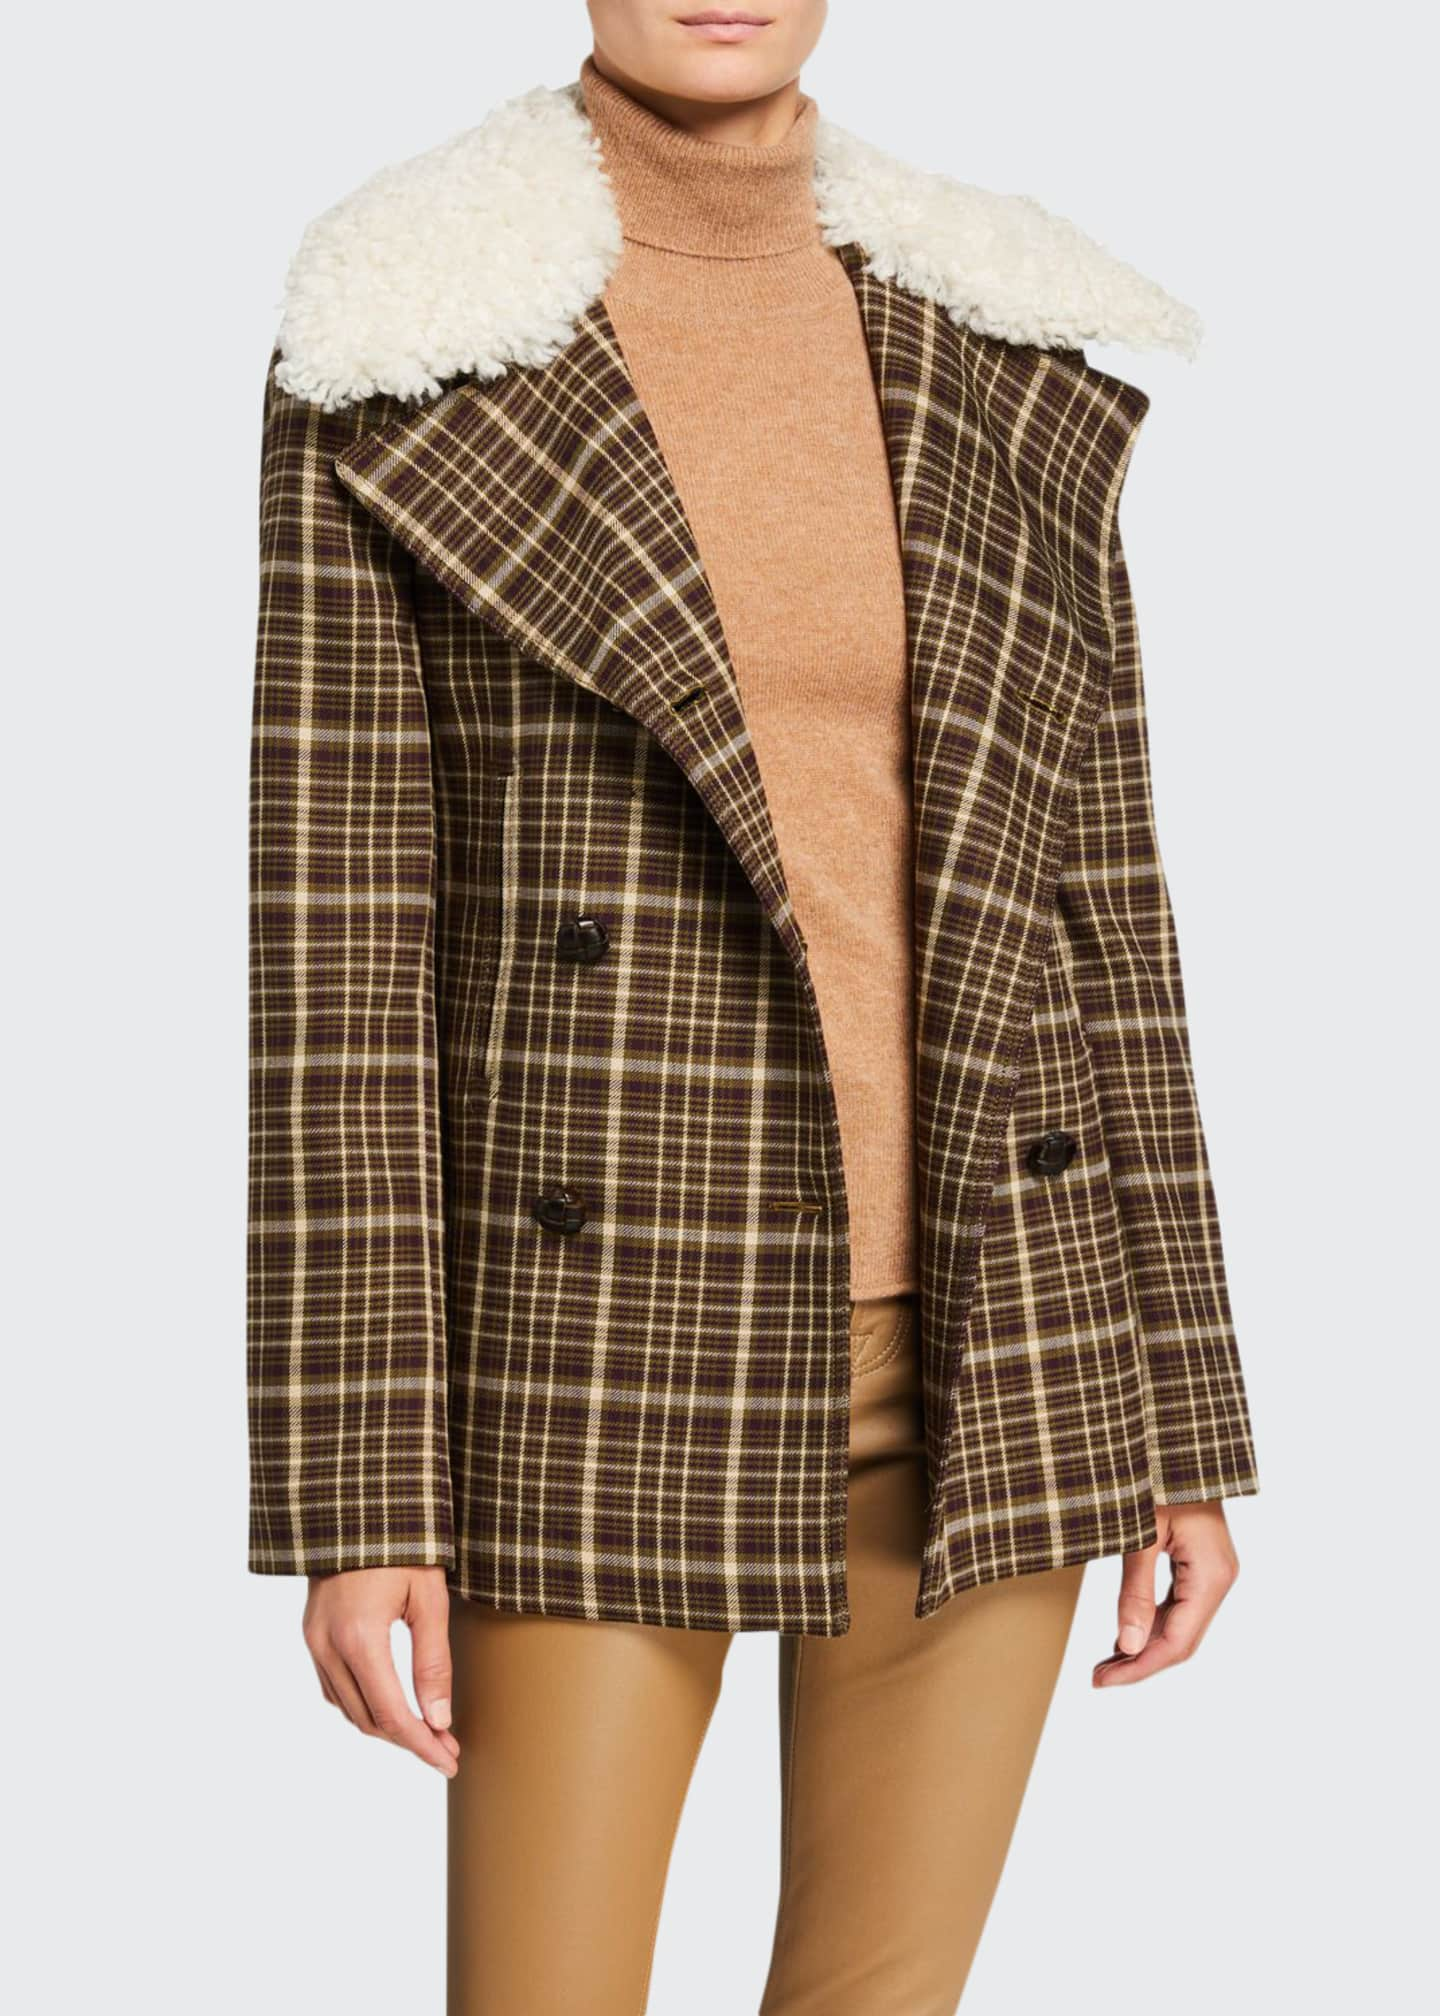 Adam Lippes Double-Face Plaid Wool Pea Coat with